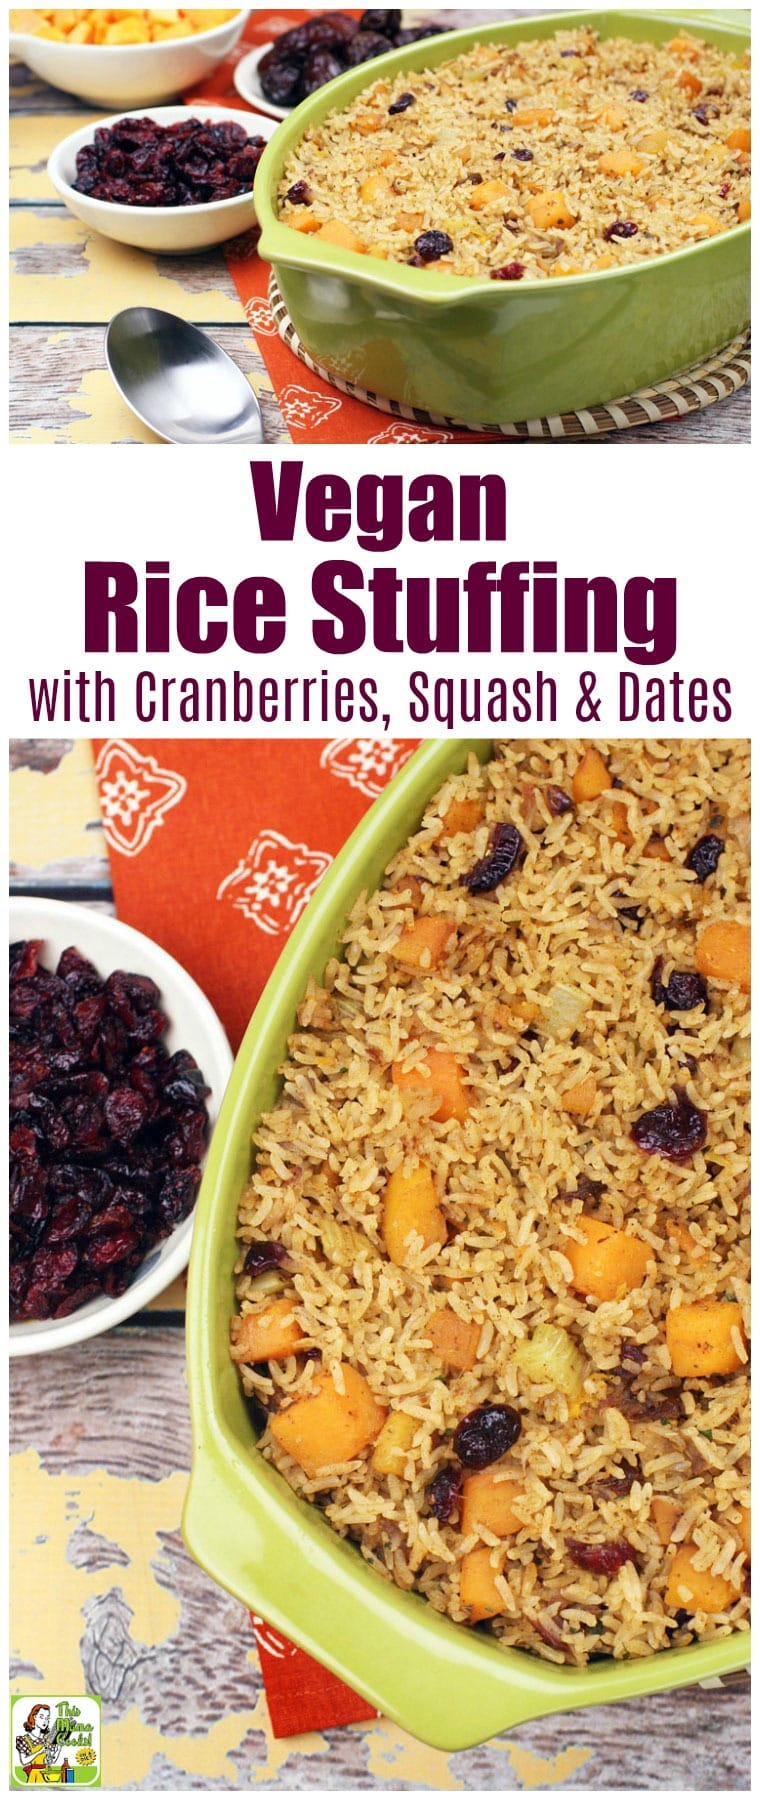 This vegan rice stuffing is cooked with cranberries, butternut squash, and dates. This vegan, gluten-free stuffing is made with jasmine rice. #recipes #easy #recipeoftheday #glutenfree #easyrecipe #easyrecipes #glutenfreerecipes #thanksgiving #thanksgivingrecipes #veganfood #vegan #veganrecipes #rice #dairyfree #squash #cranberry #cranberries #stuffing #dates #vegetarian #vegetarianrecipes